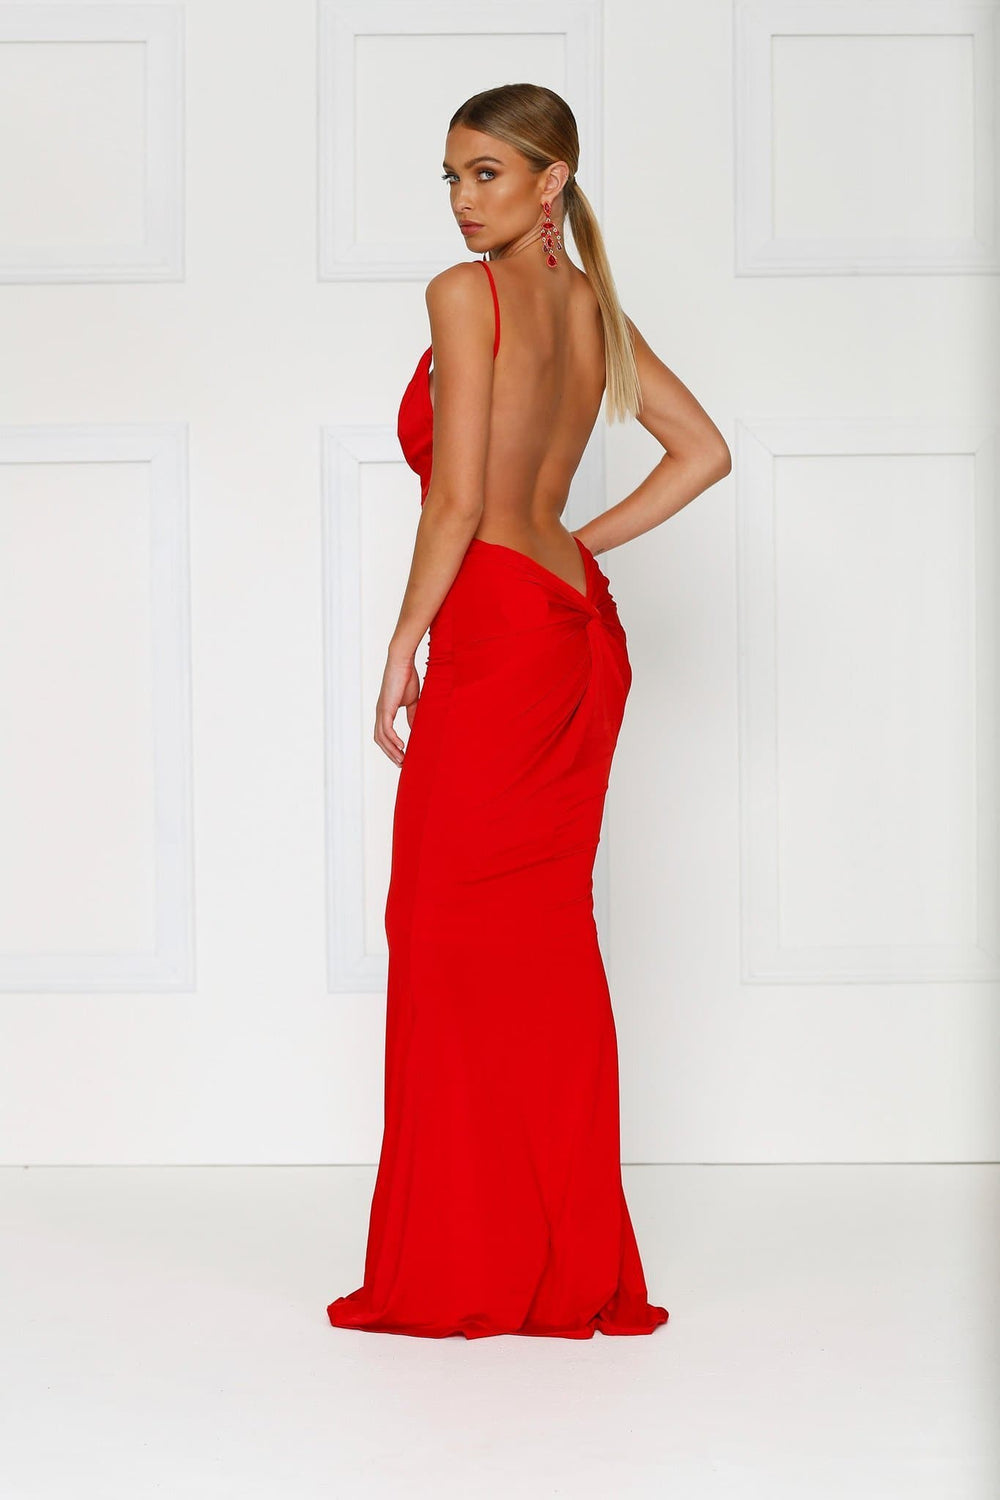 Penelope - Bright Red Backless Dress with Back Knot Design